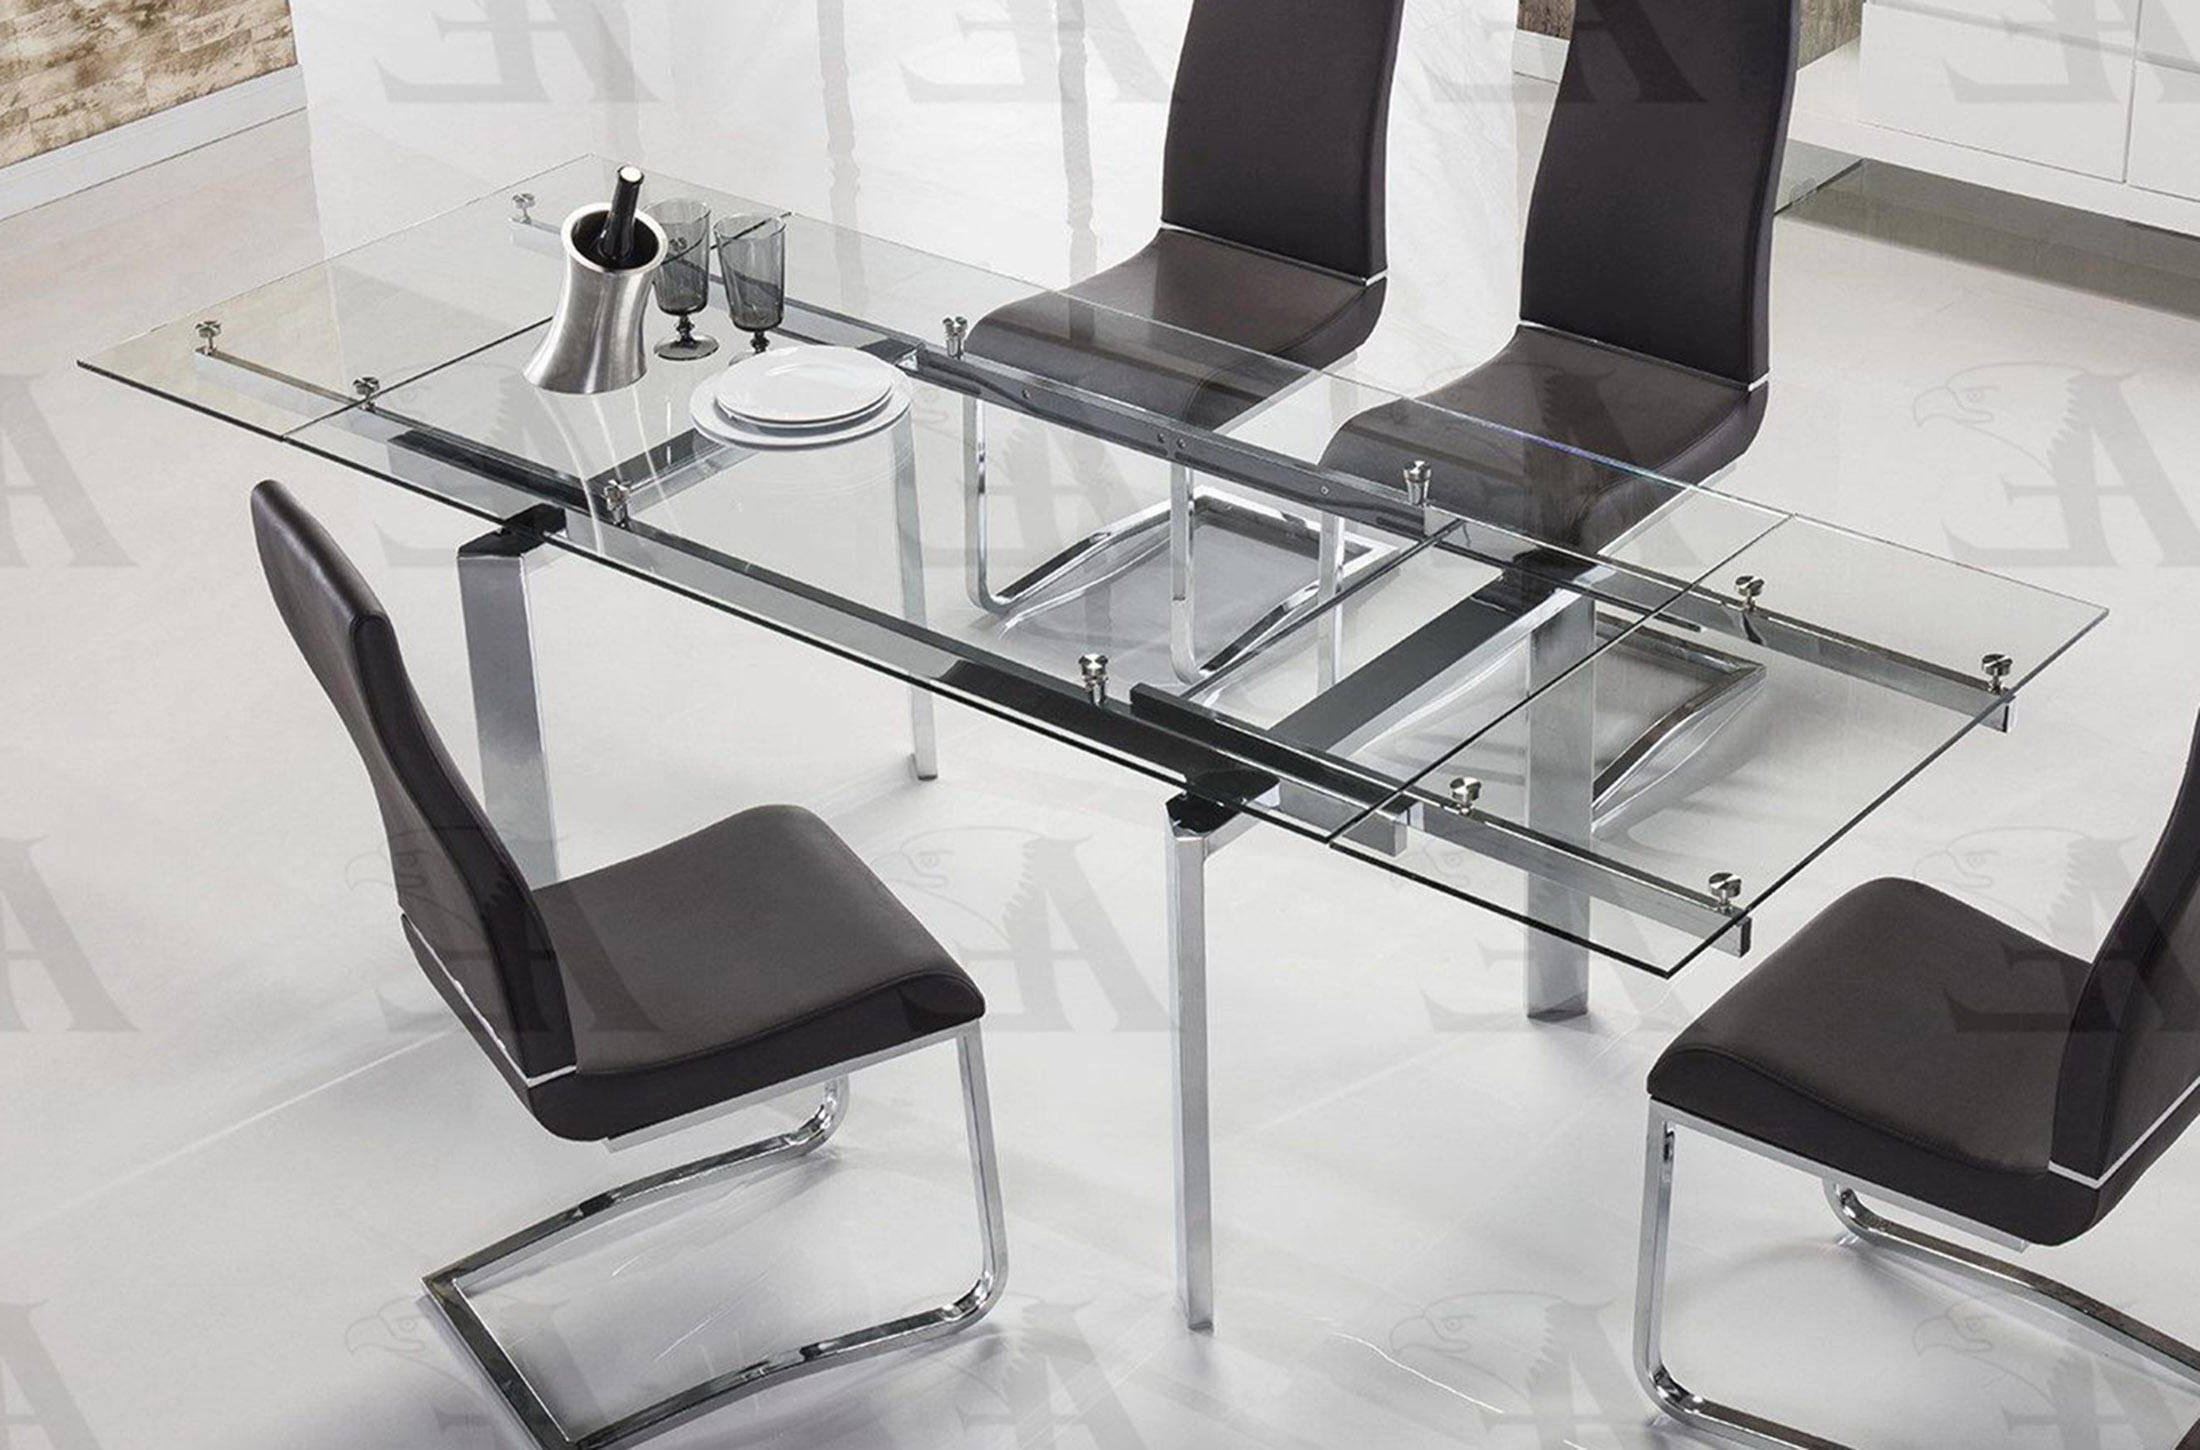 Well Known Modern Glass Top Extension Dining Tables In Stainless Inside American Eagle Furniture Tl 1134S C Clear Glass Top Extendable Dining Table  Chrome Legs (Gallery 14 of 30)